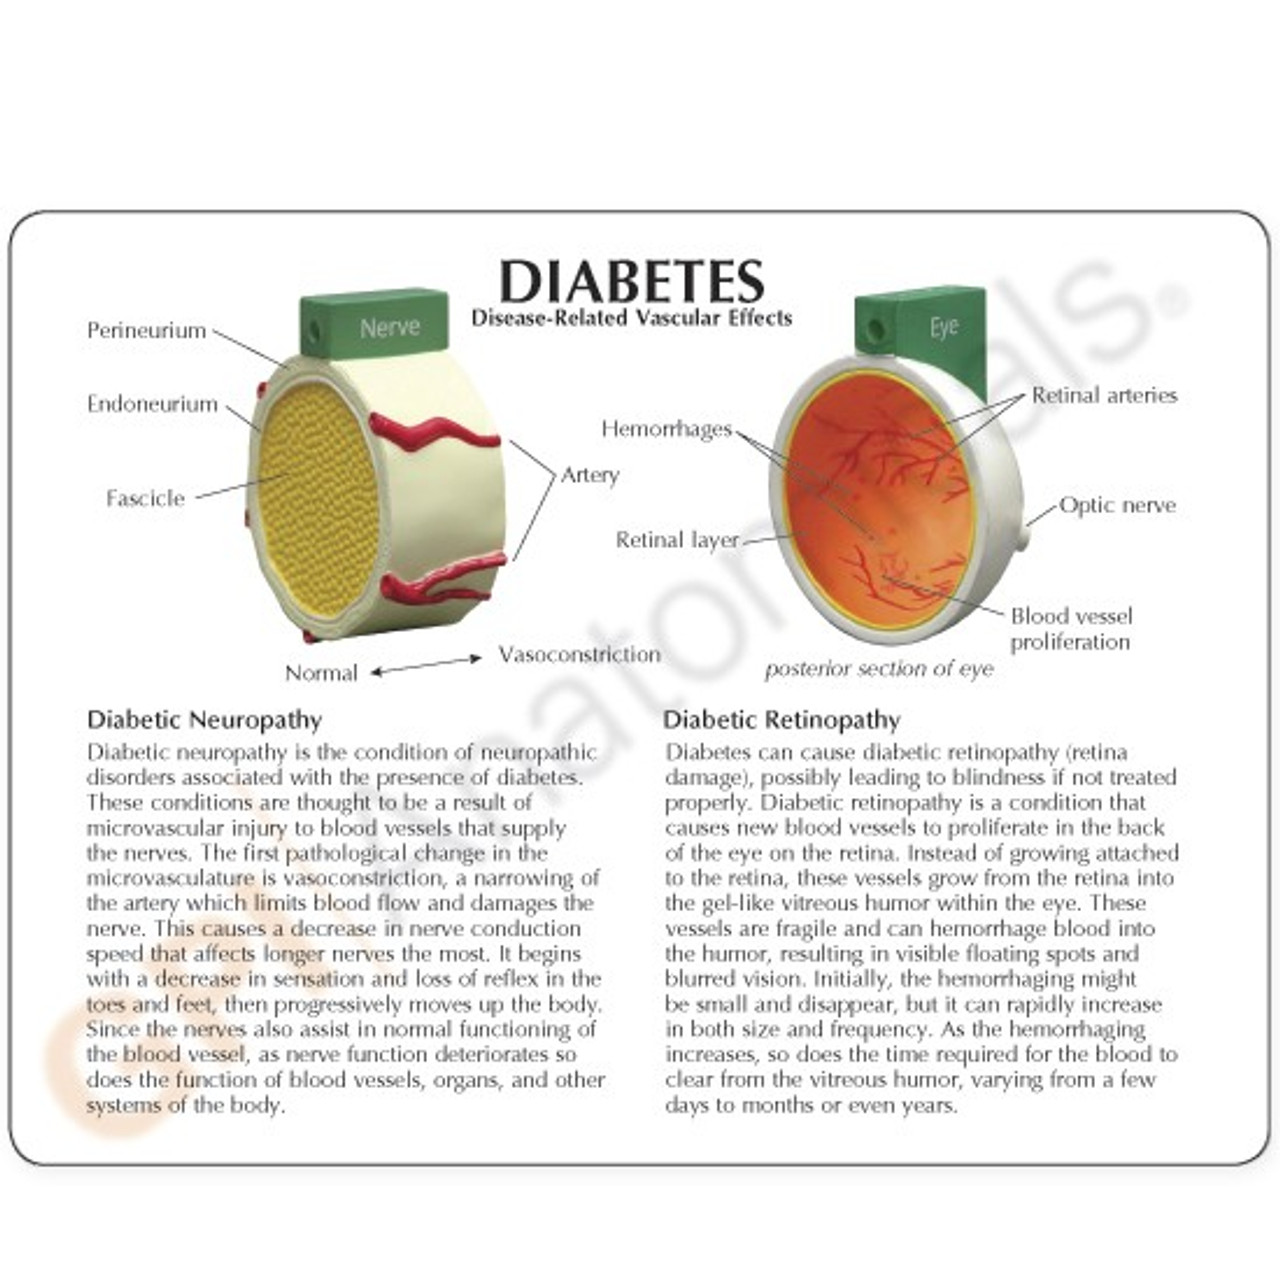 Diabetes model description card